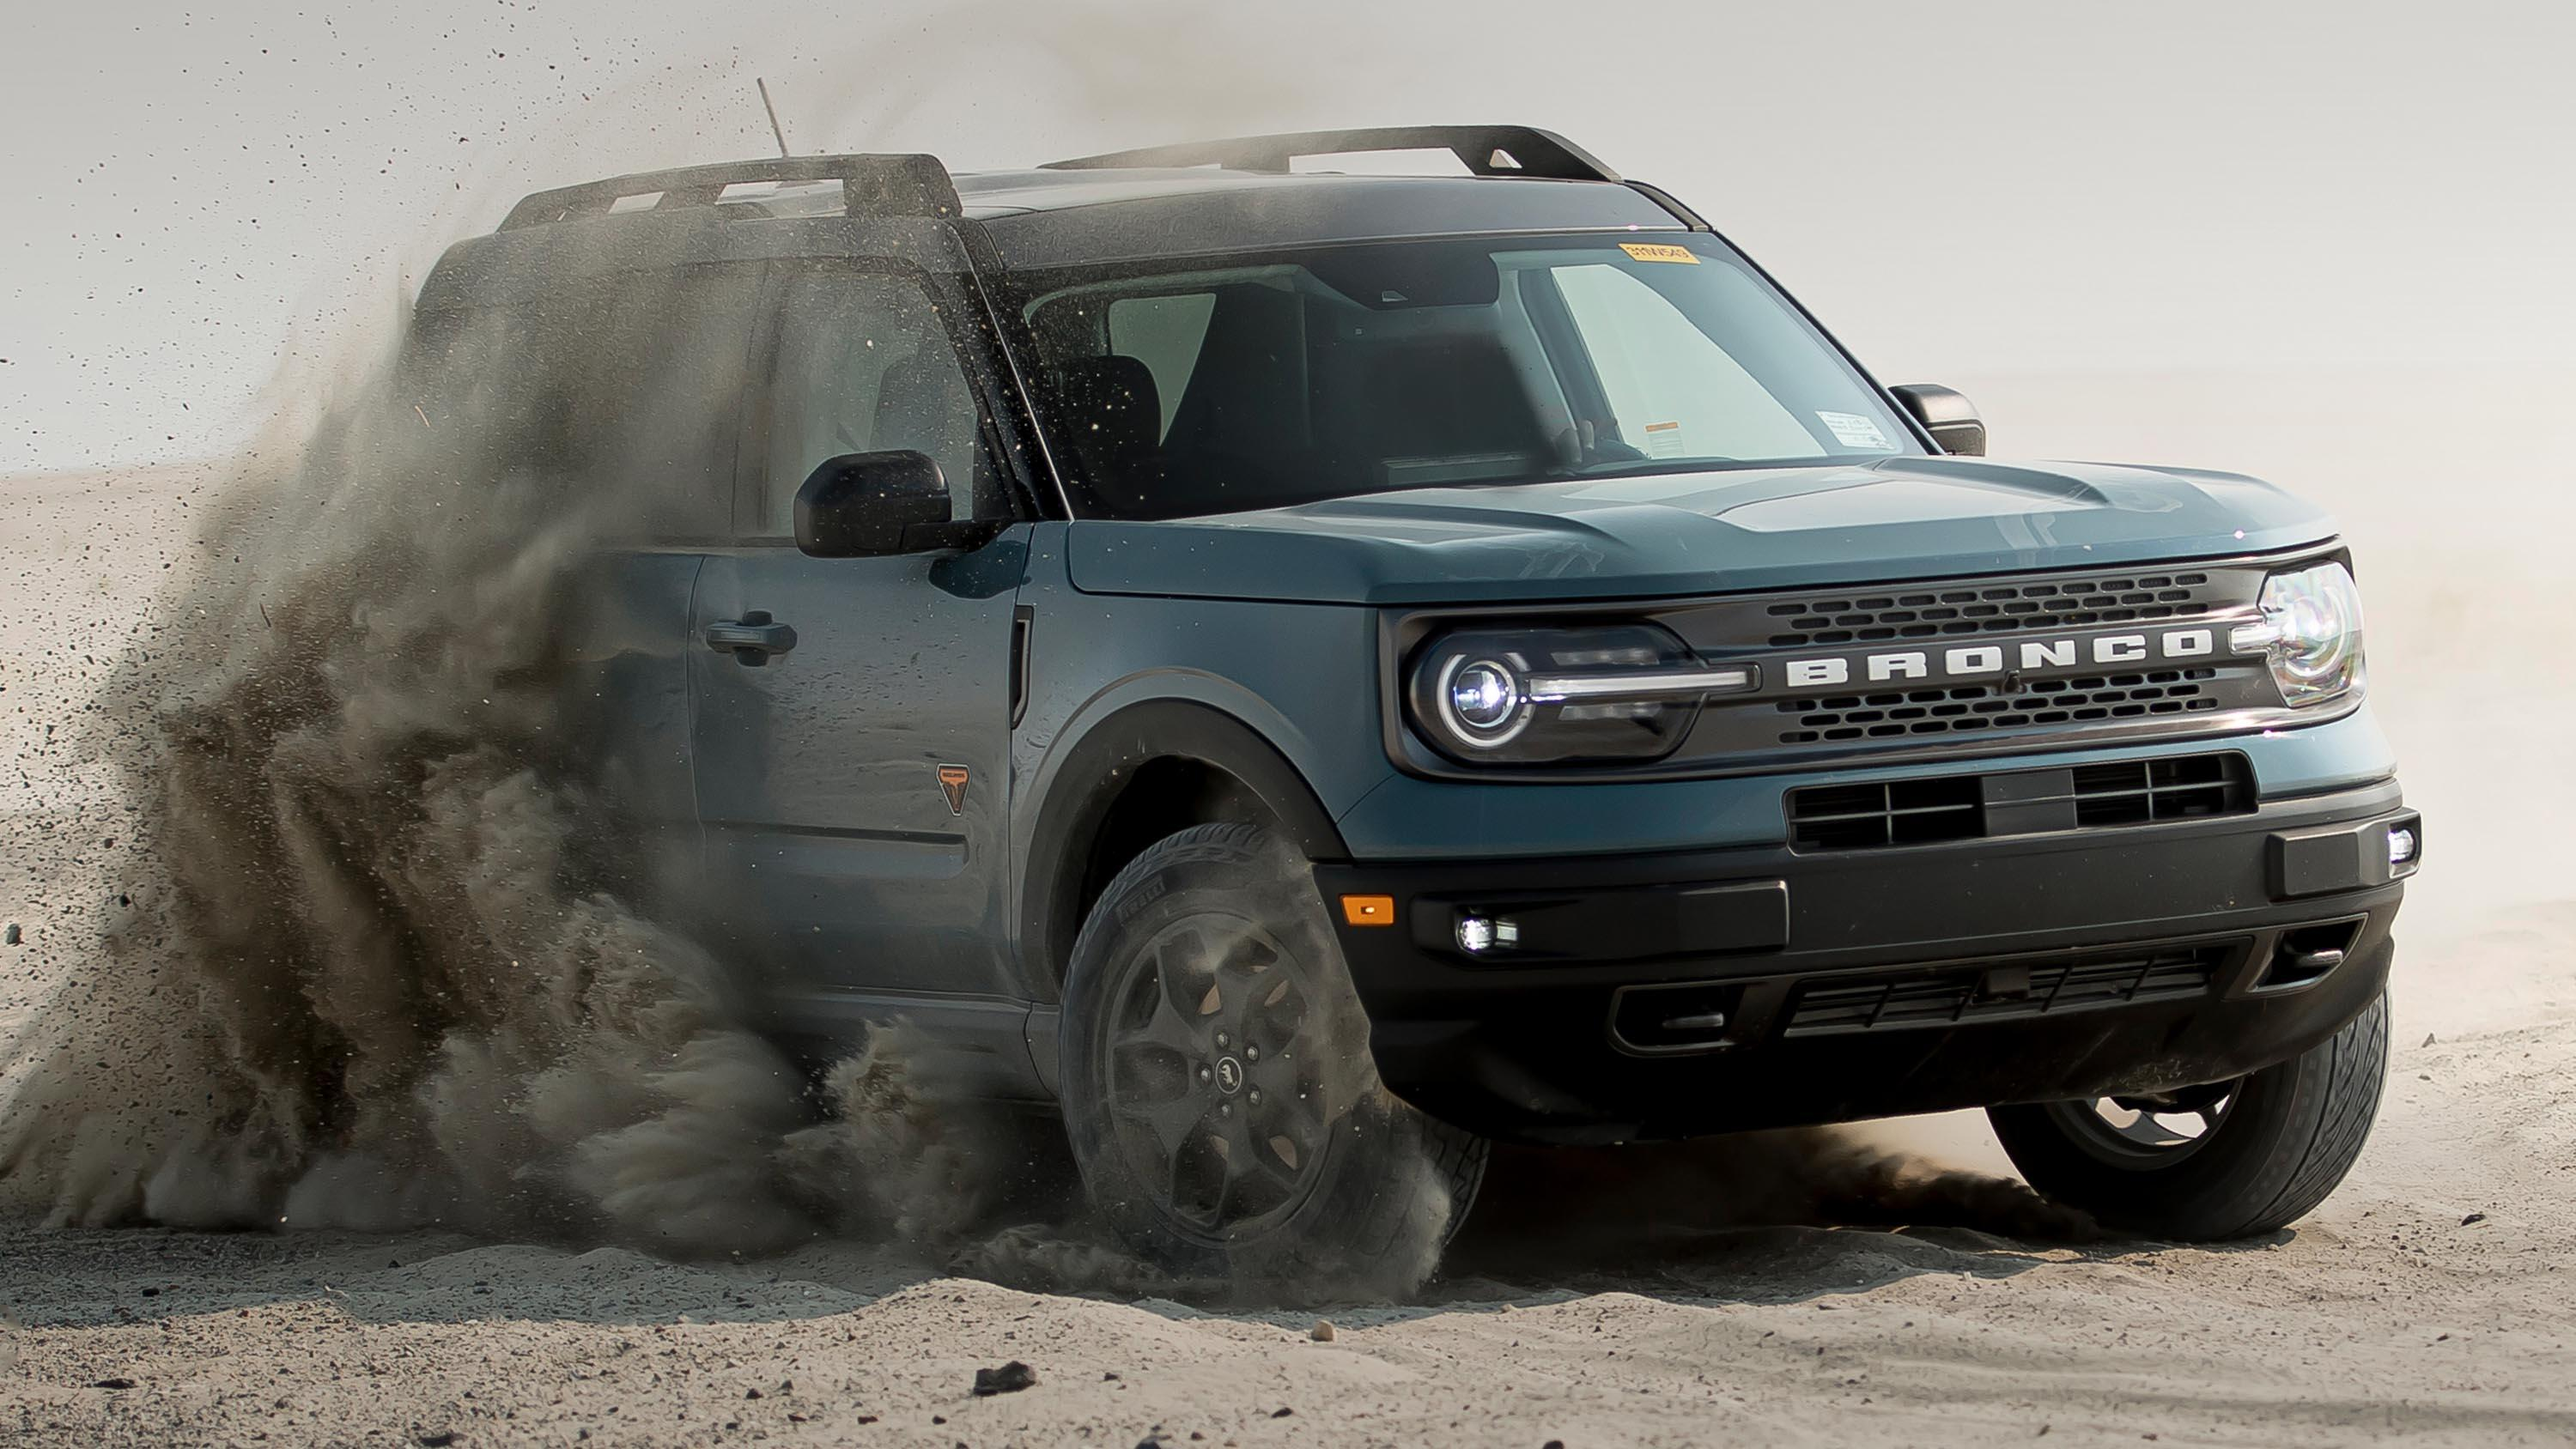 Video: 2021 Ford Bronco Sport: A Bronco on its own merits